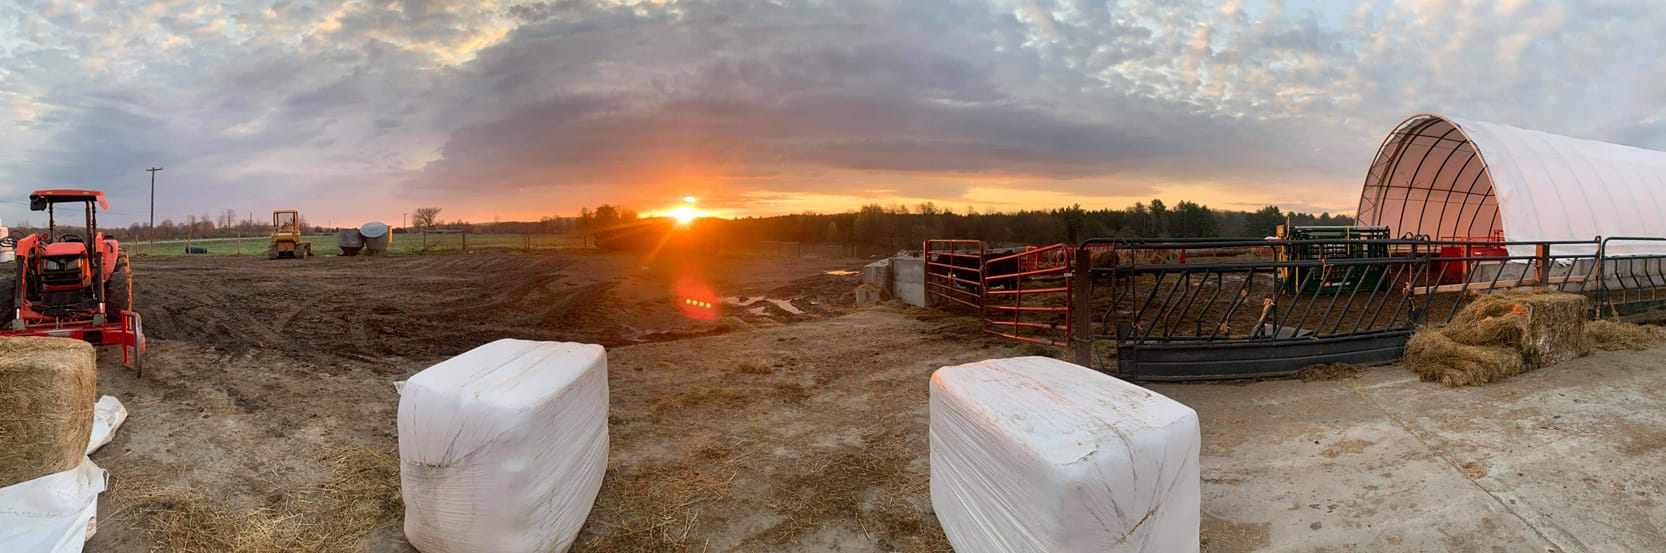 Sunrise over Simply Grazin' Fort Ann, NY farm on April 20, 2021